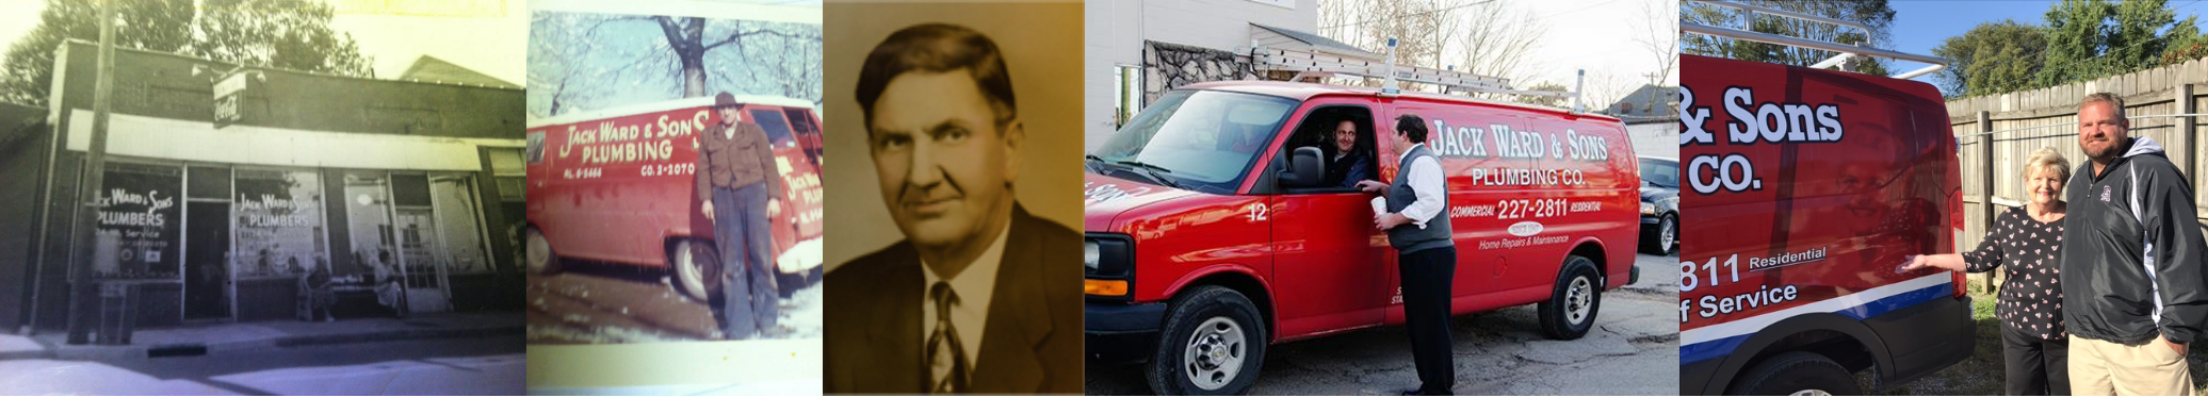 Jack Ward & Sons Plumbing Co. through the years